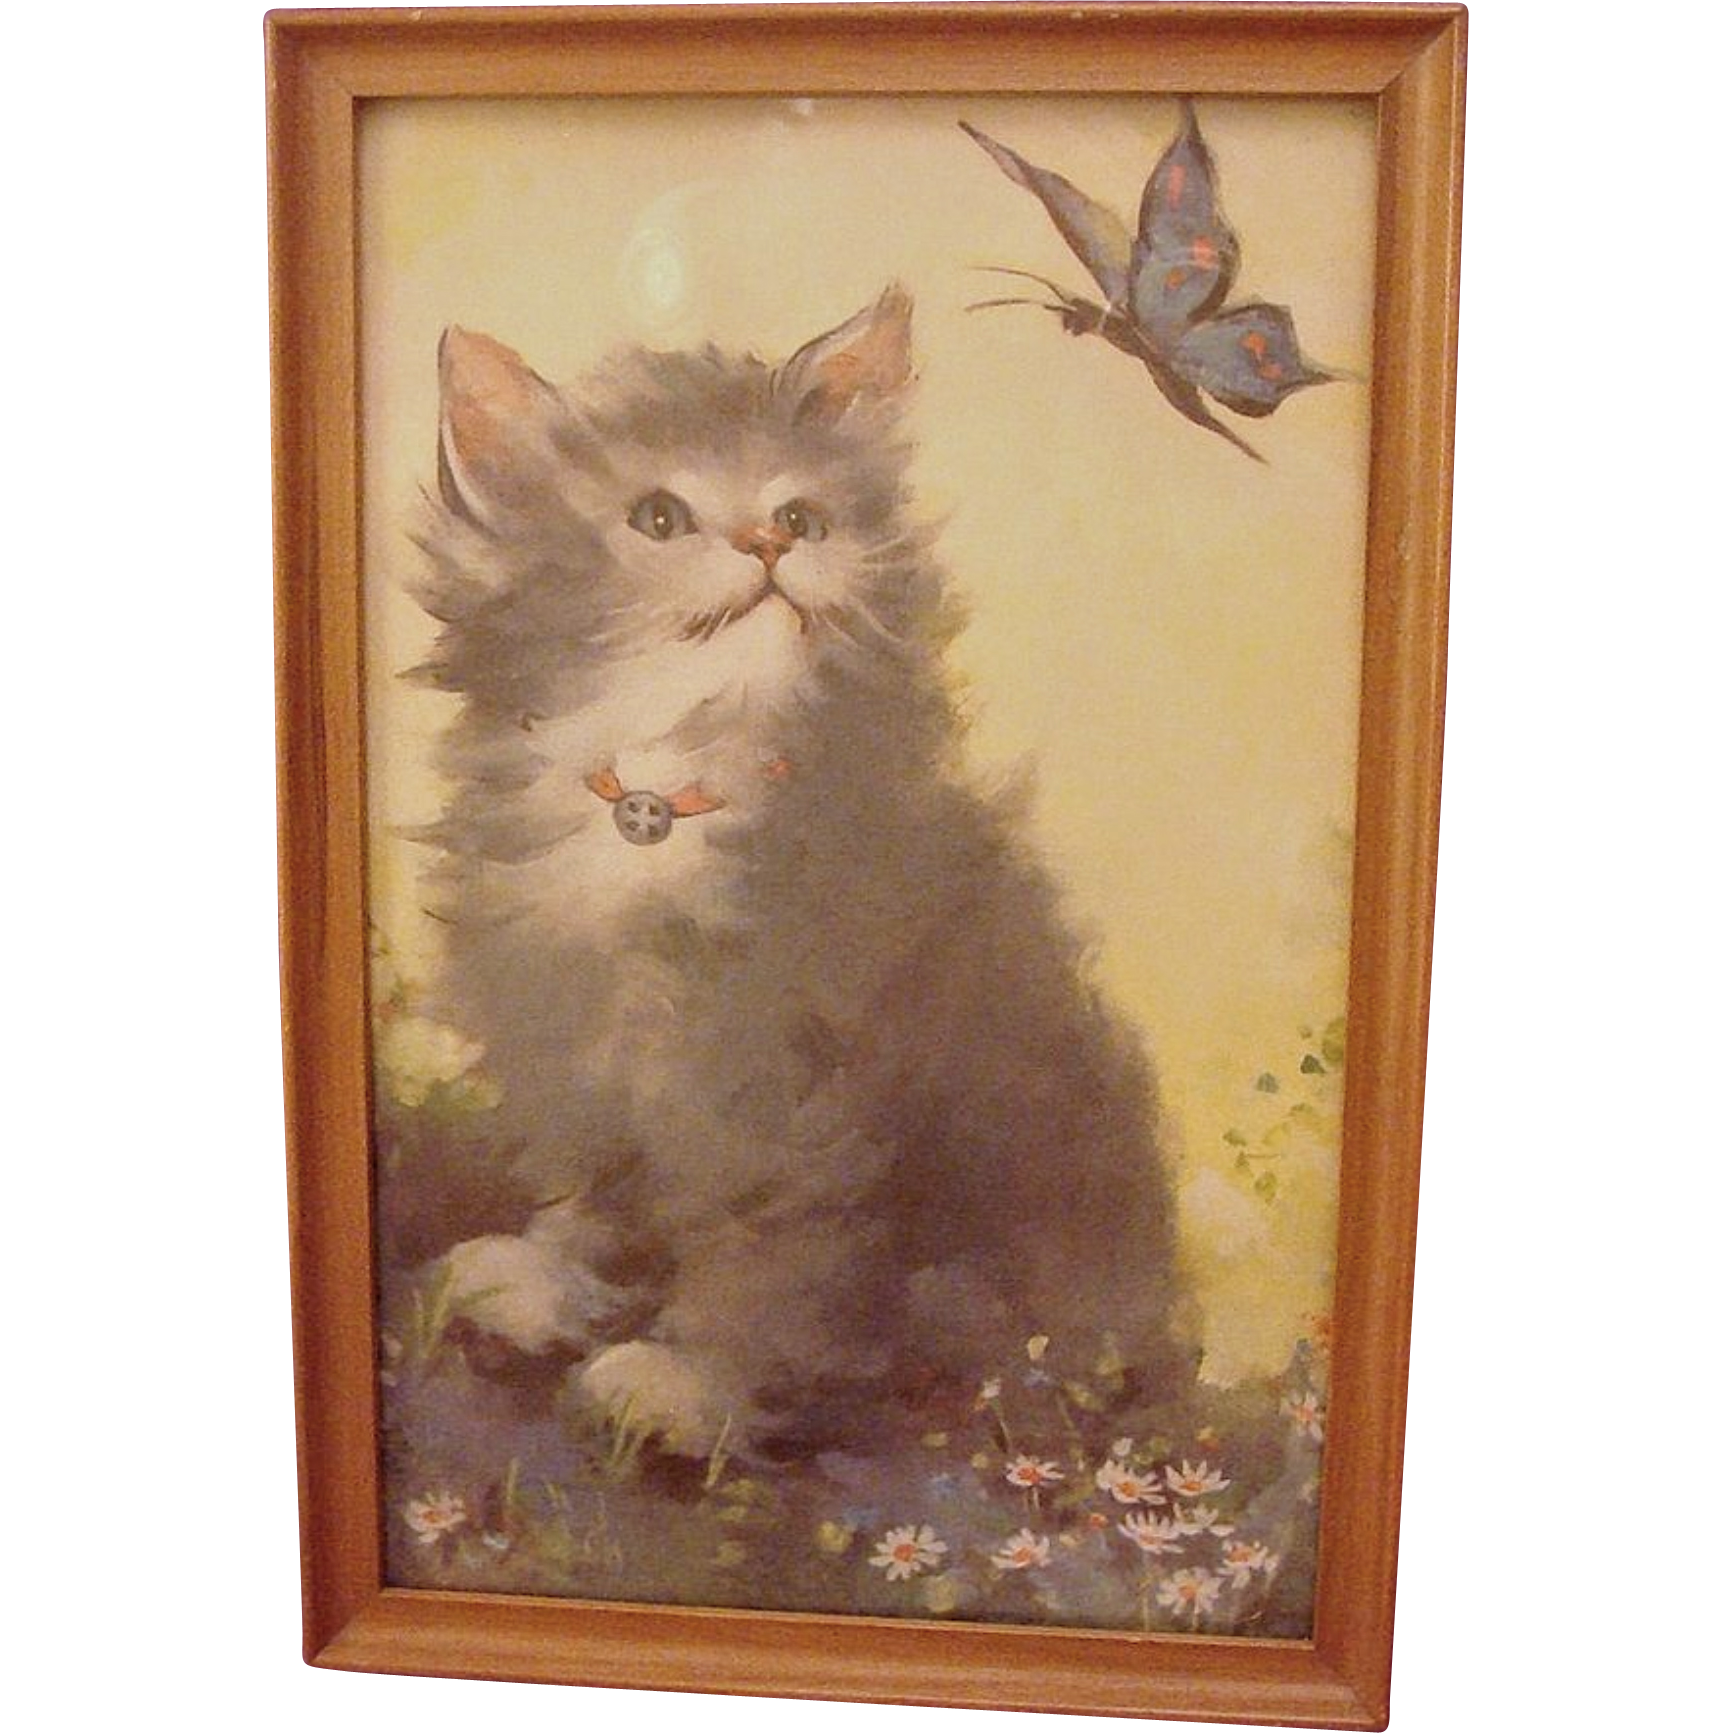 Adorable Vintage Framed Kitten and Butterfly Print by Florence Kroger